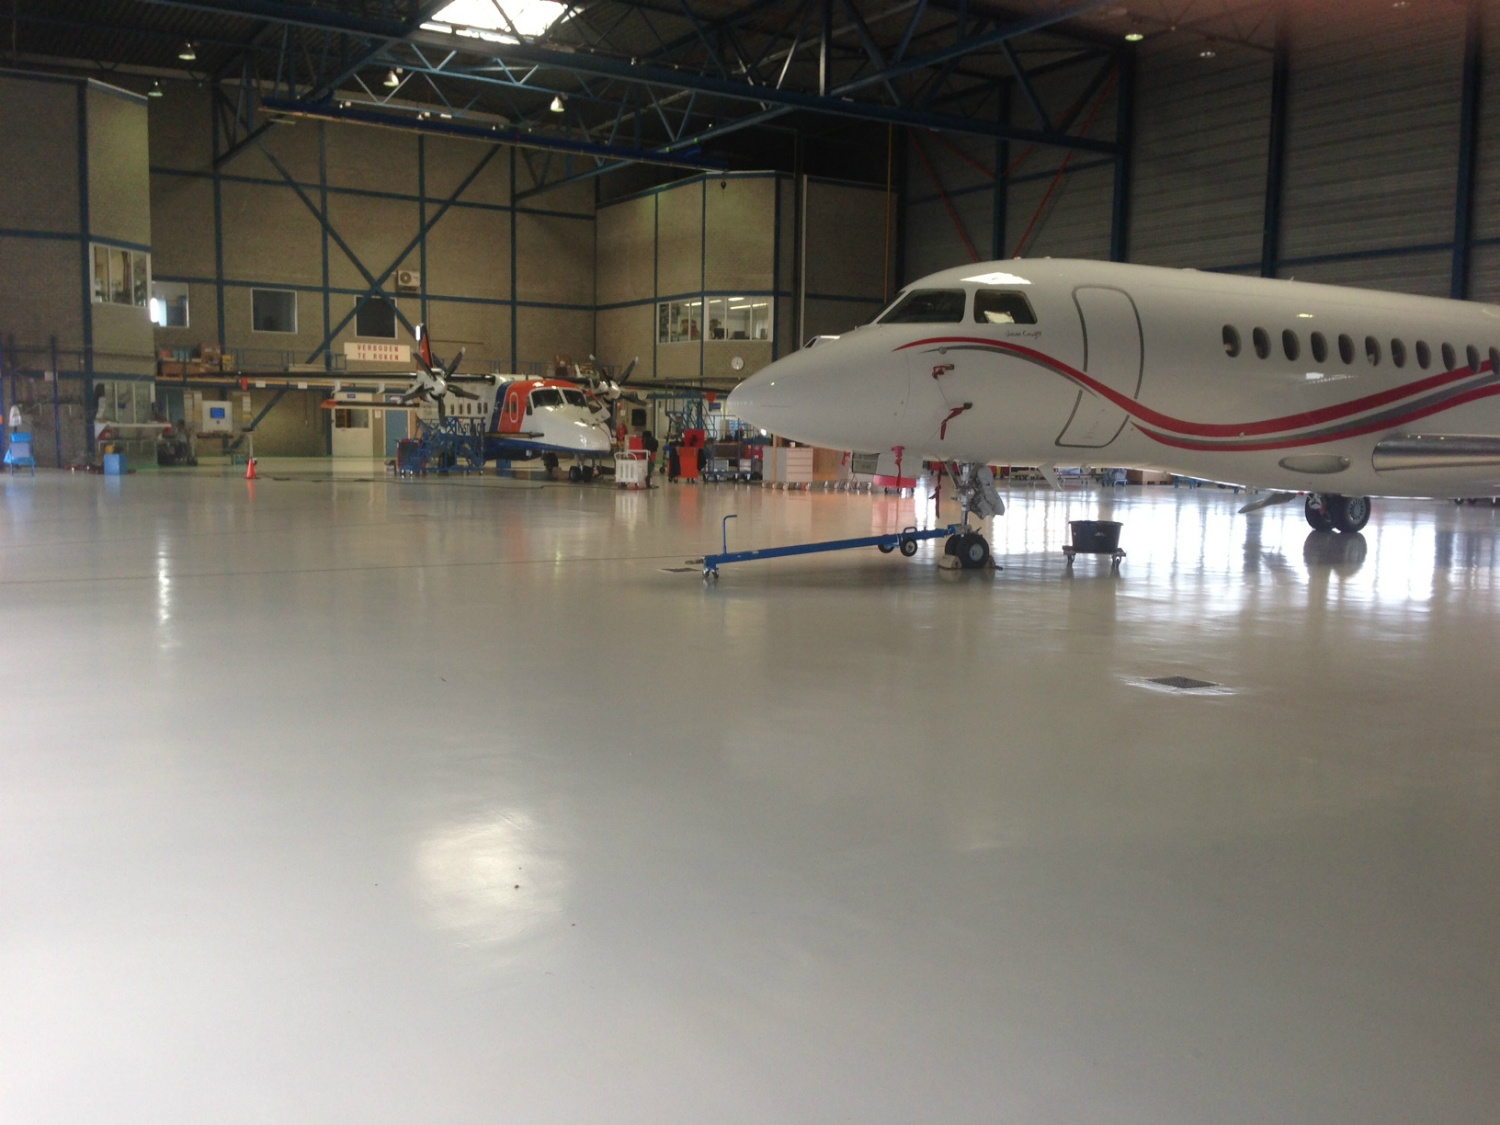 coating in hangar